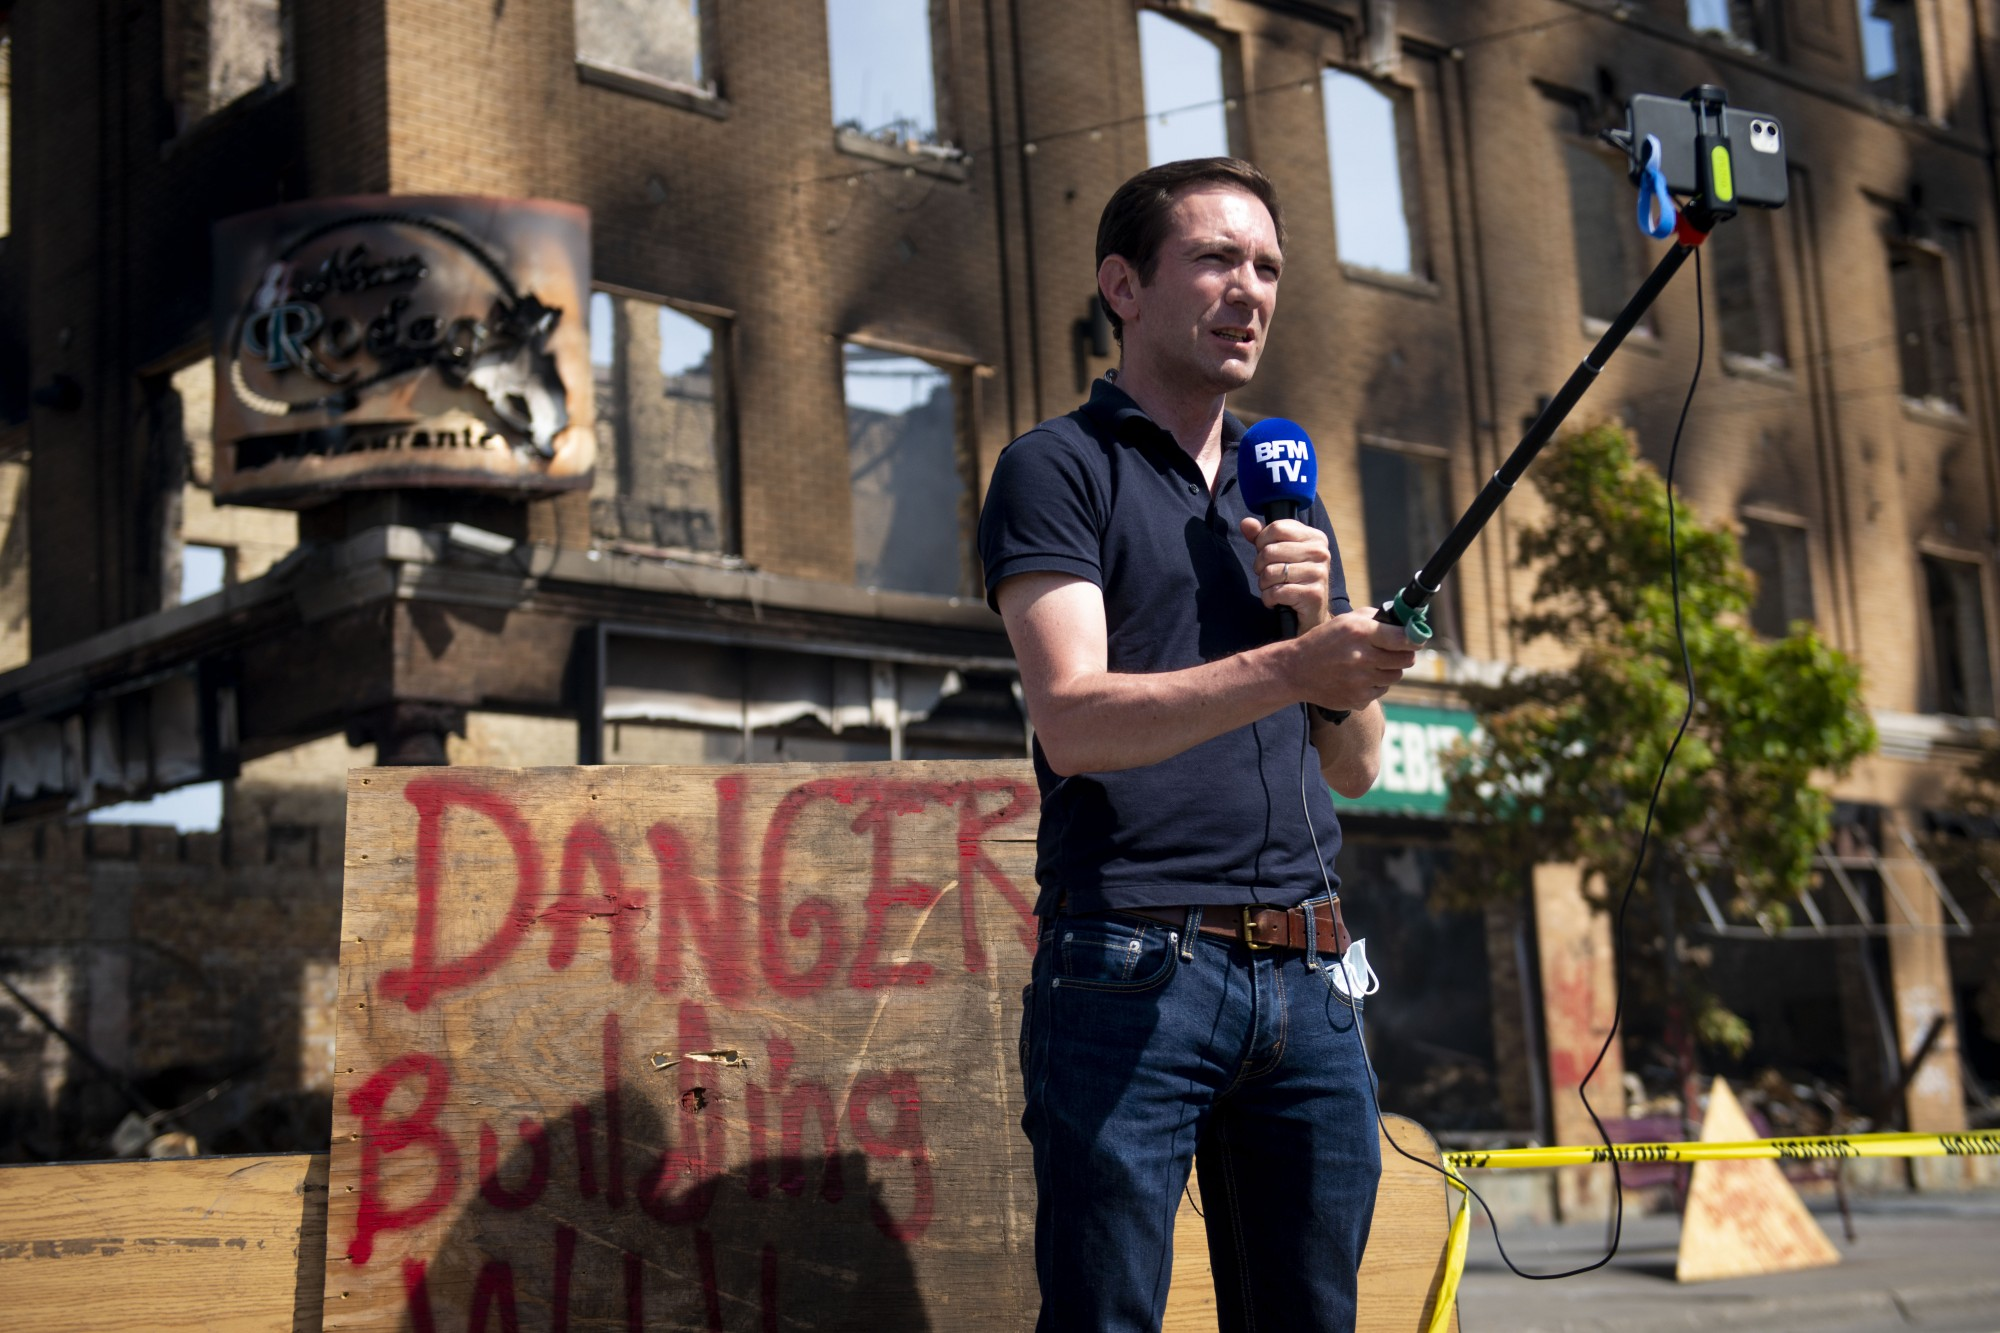 Cédric Faiche, a correspondent for the French station BFM TV, records himself on Lake Street in Minneapolis on Sunday, May 31.